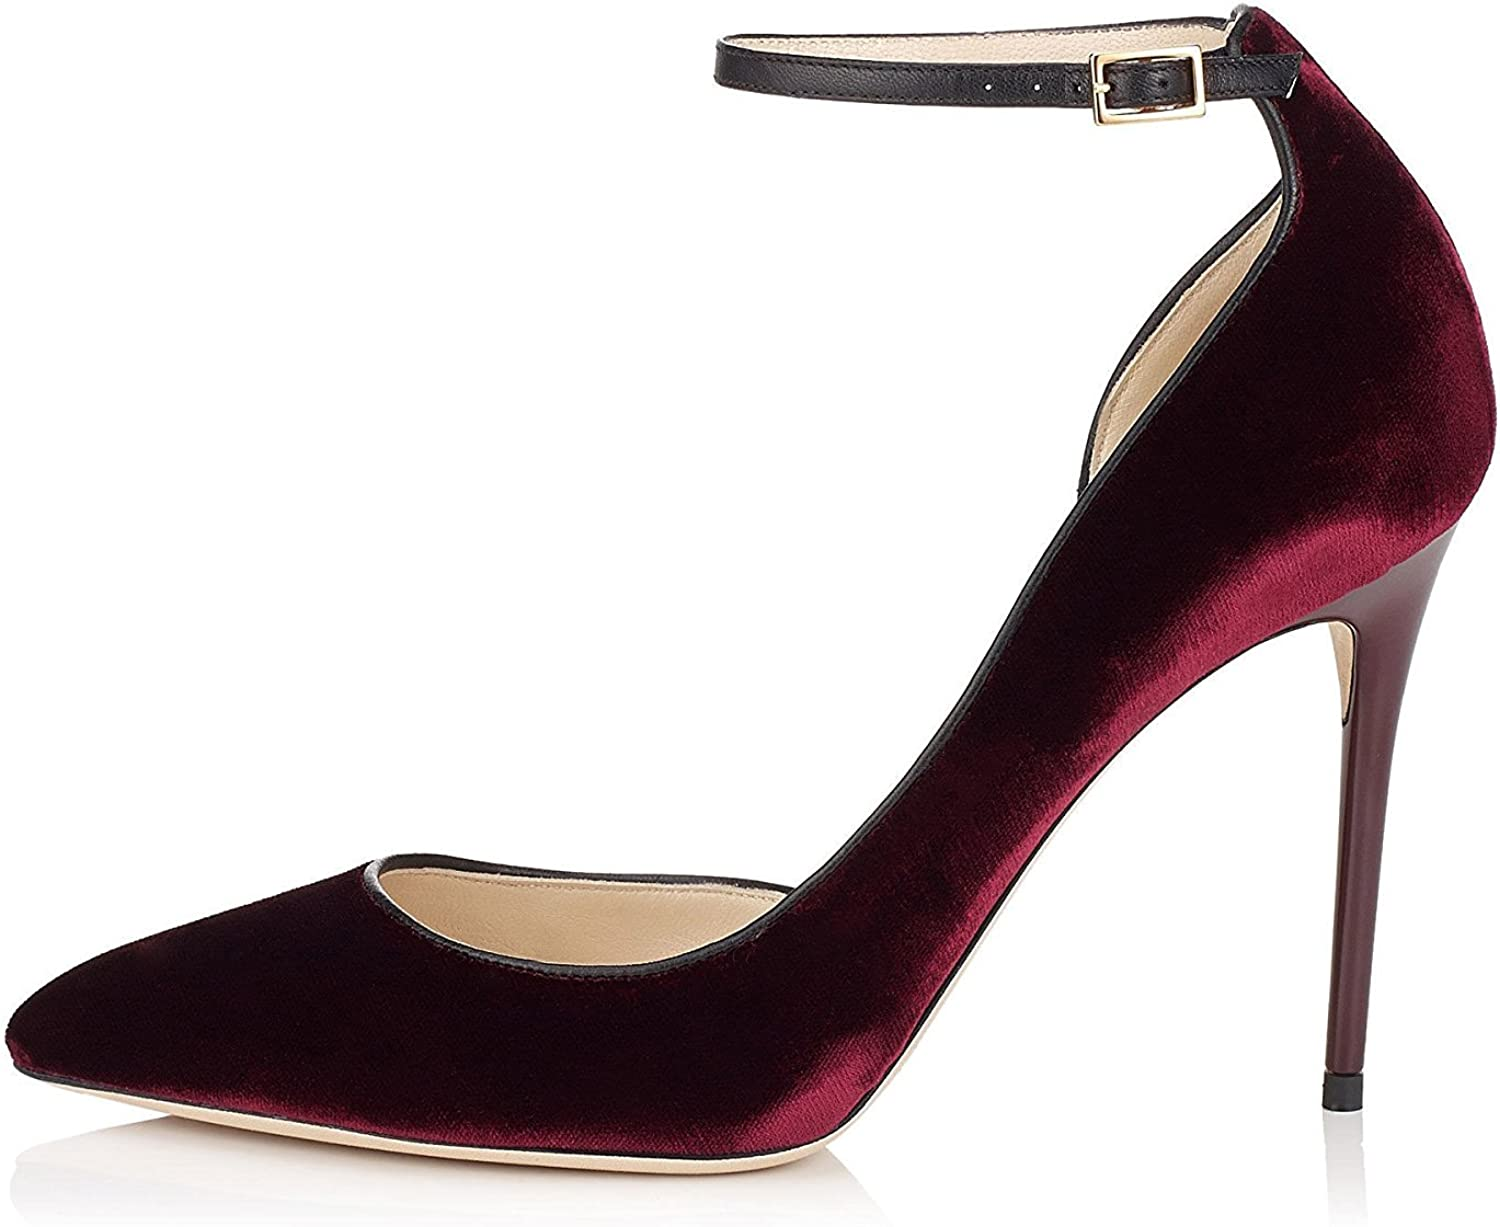 Nansay Women's shoes Big Size D'Orsay&Two-Piece High Heels Pointed Toe Ladies shoes Buckle Strap Pumps